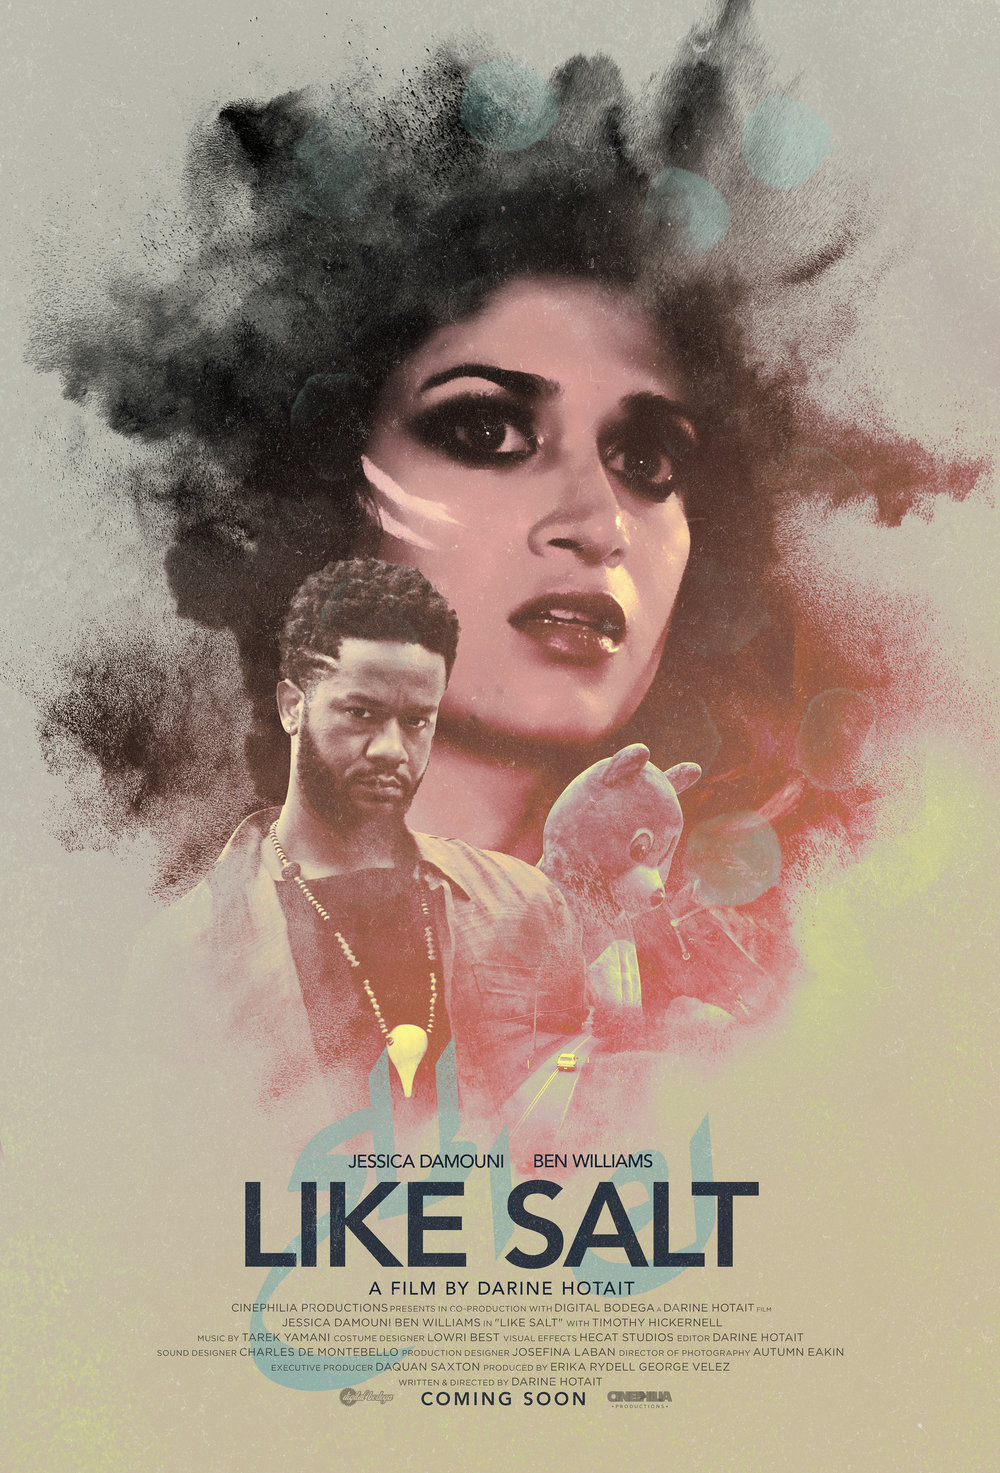 Like_Salt_Poster_13.5x20_sRGB_COMING_SOON.jpg